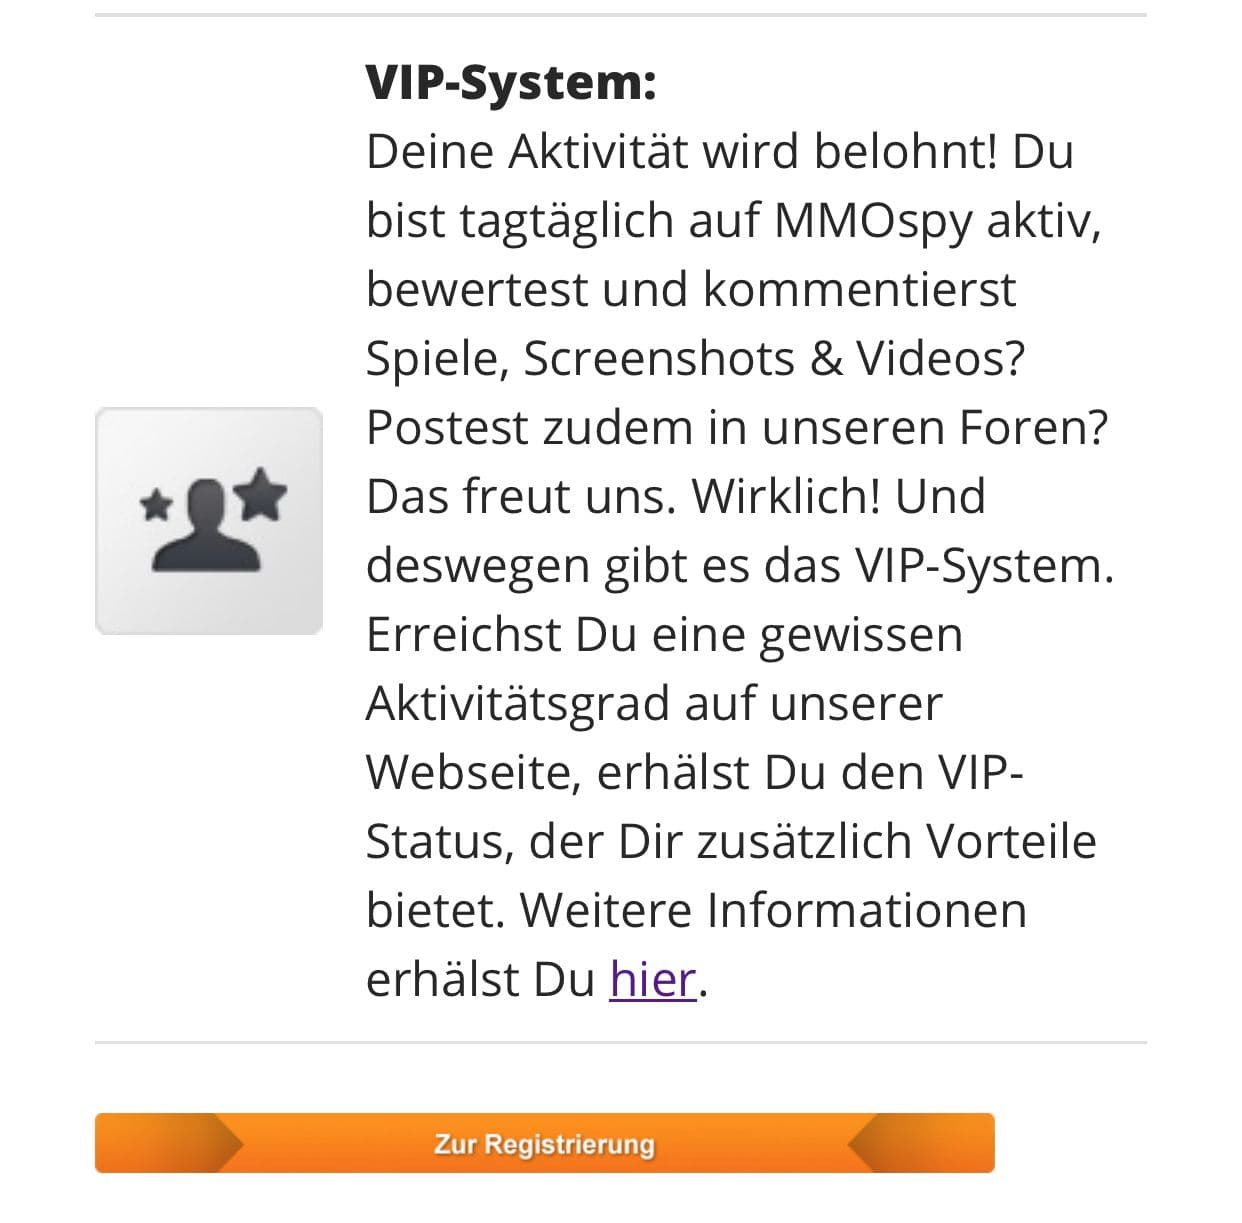 https://www.mmo-spy.de/uploads/vip4.jpg